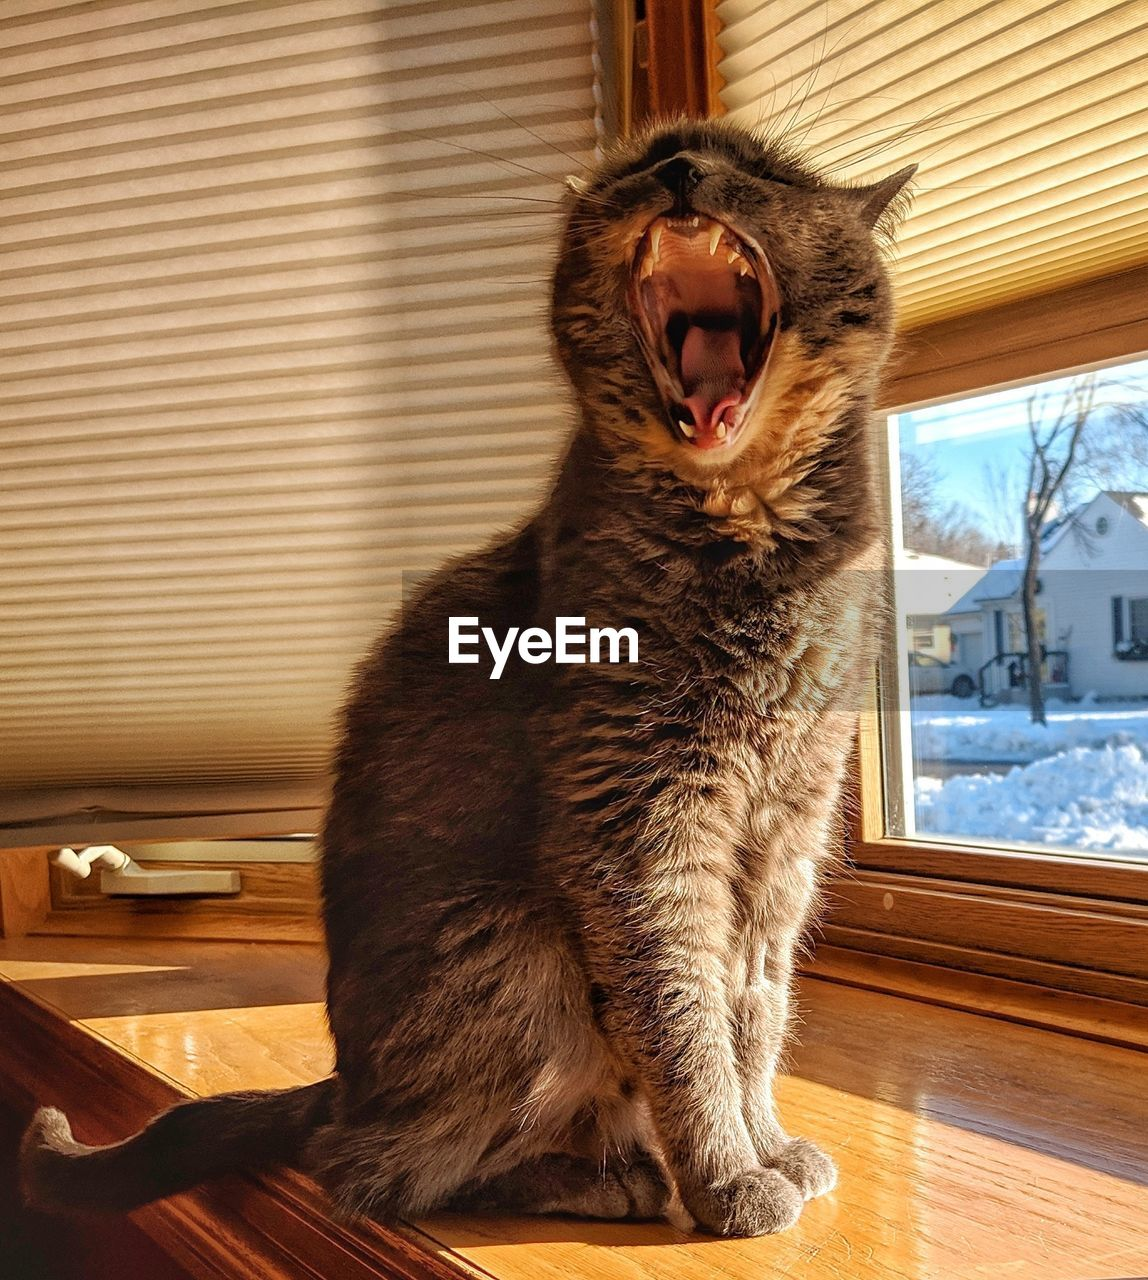 domestic cat, cat, feline, mammal, animal, animal themes, domestic, one animal, pets, domestic animals, vertebrate, mouth open, mouth, indoors, window, yawning, sitting, no people, focus on foreground, table, whisker, animal mouth, aggression